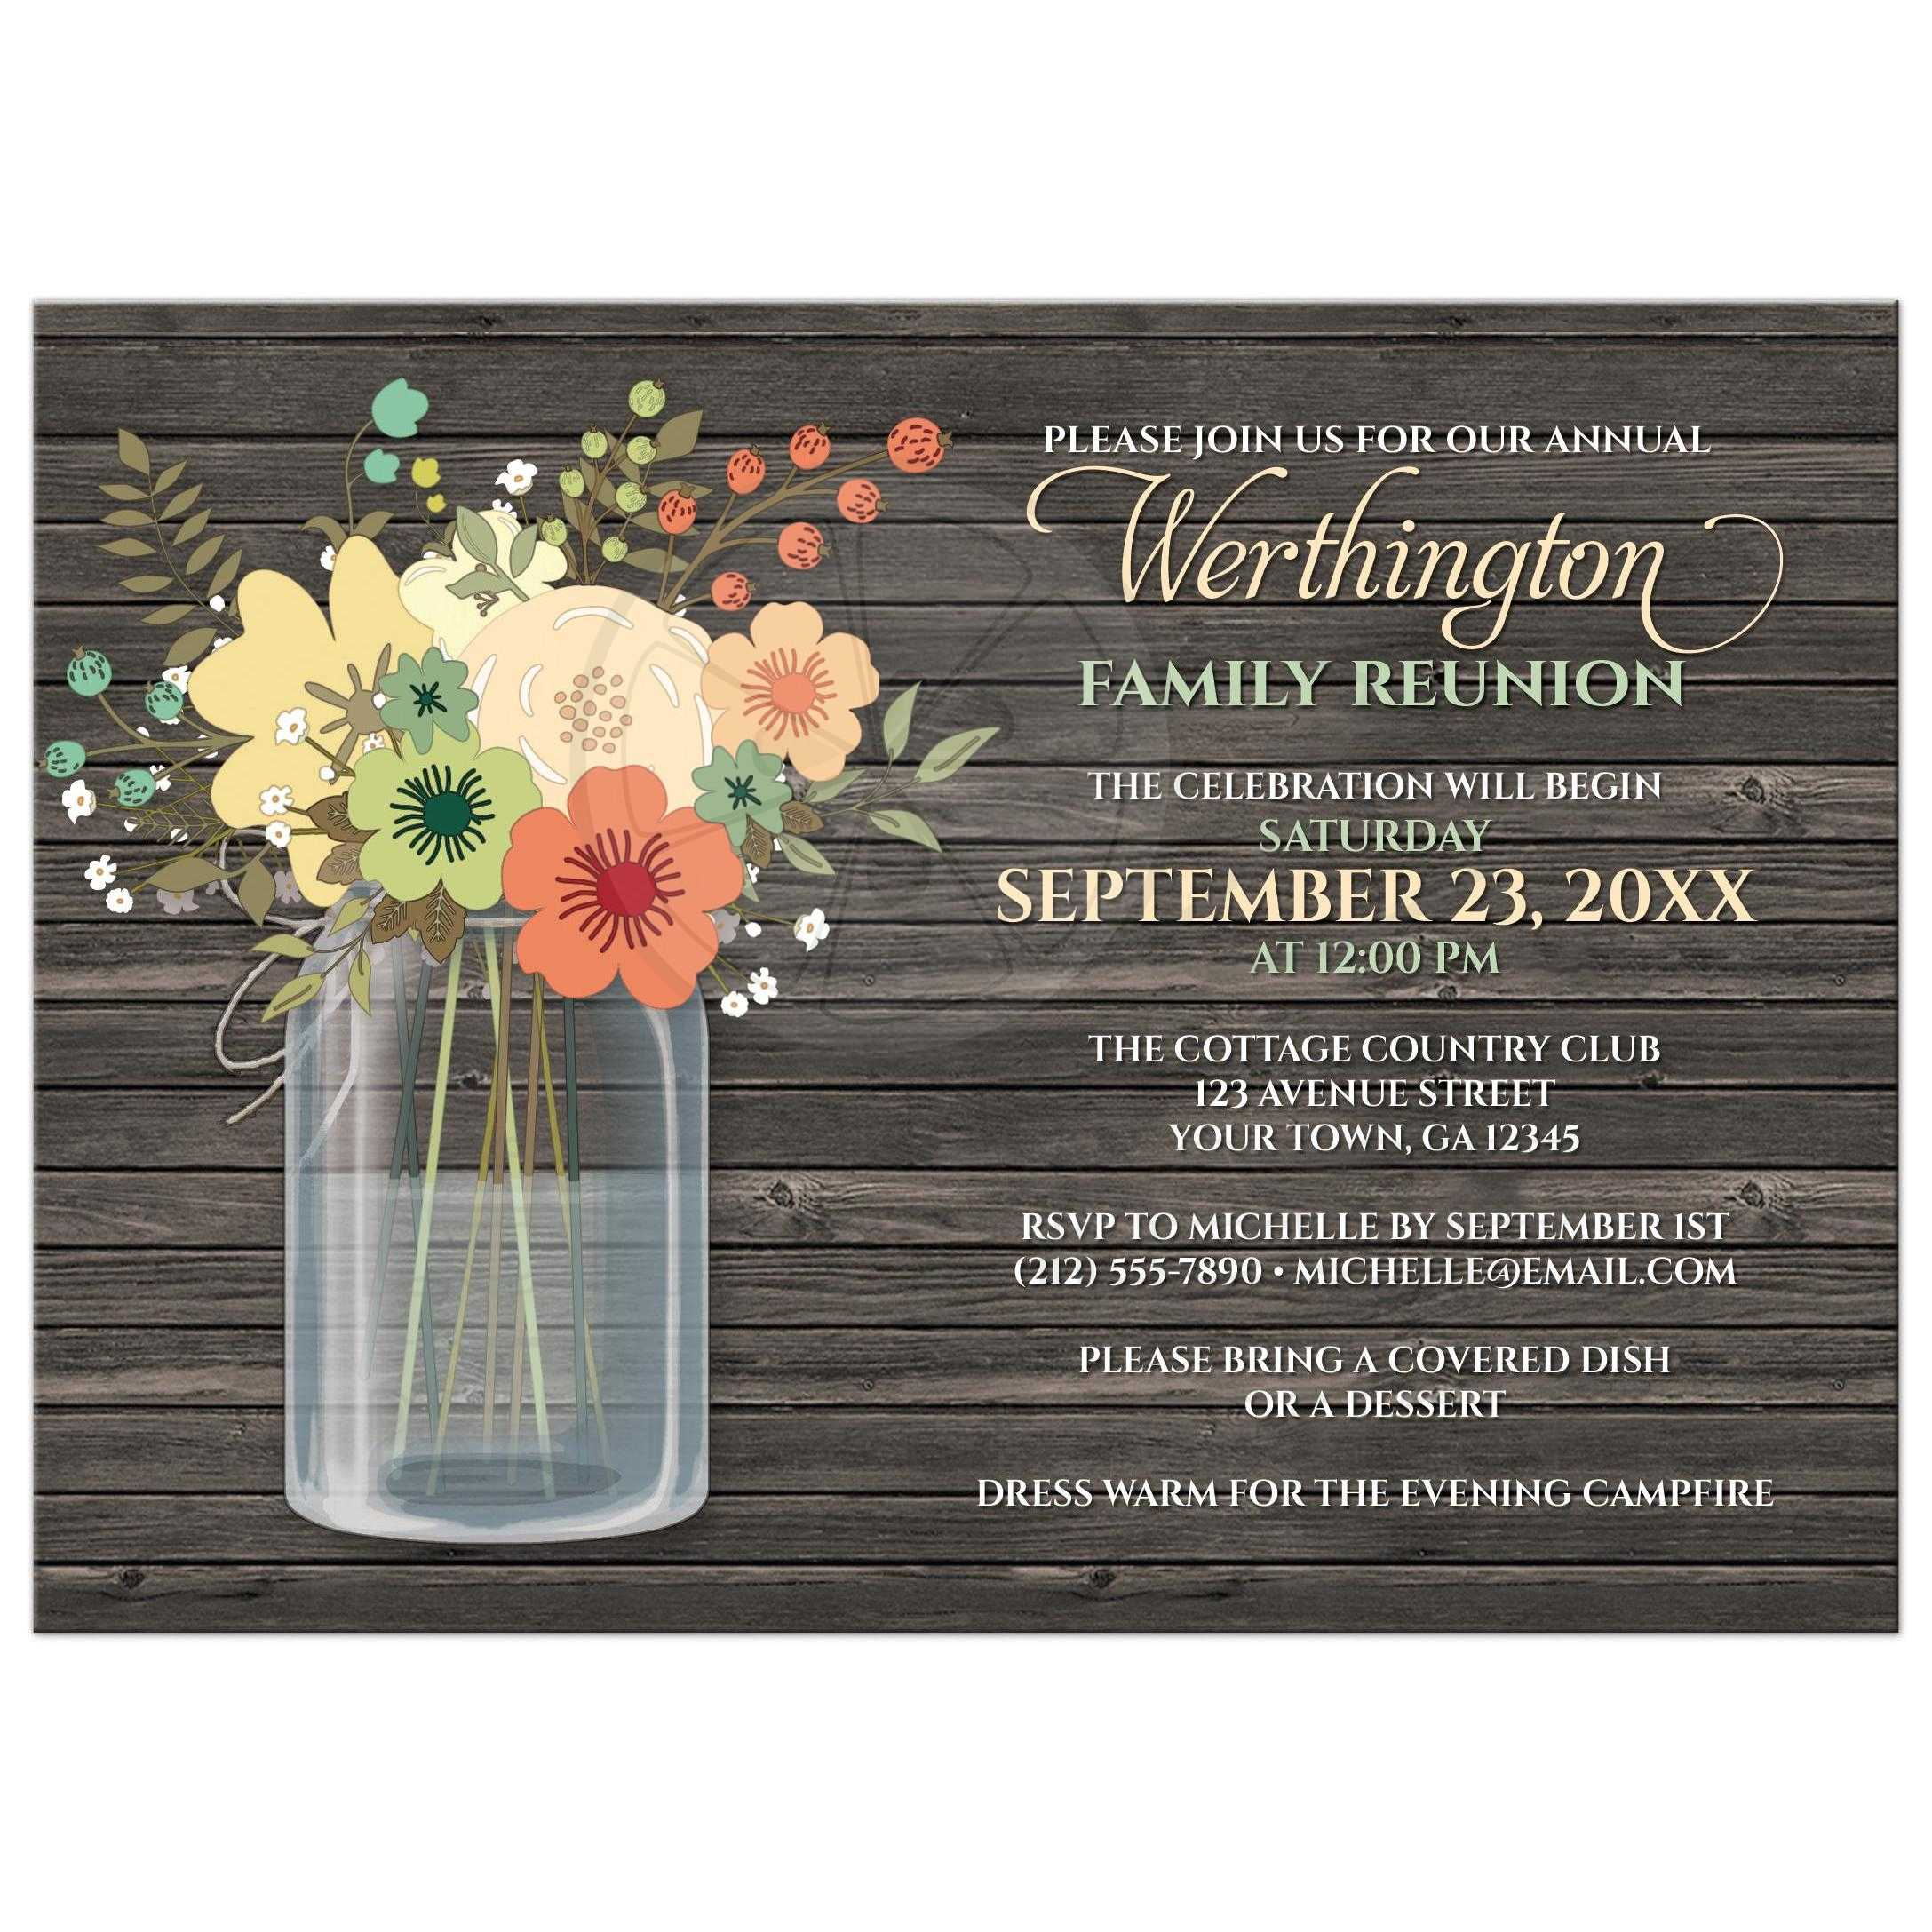 24884RectangleRusticFloralWoodMasonJarFamilyReunionInvitationsjpgt 1429229268 – Family Reunion Invitation Cards